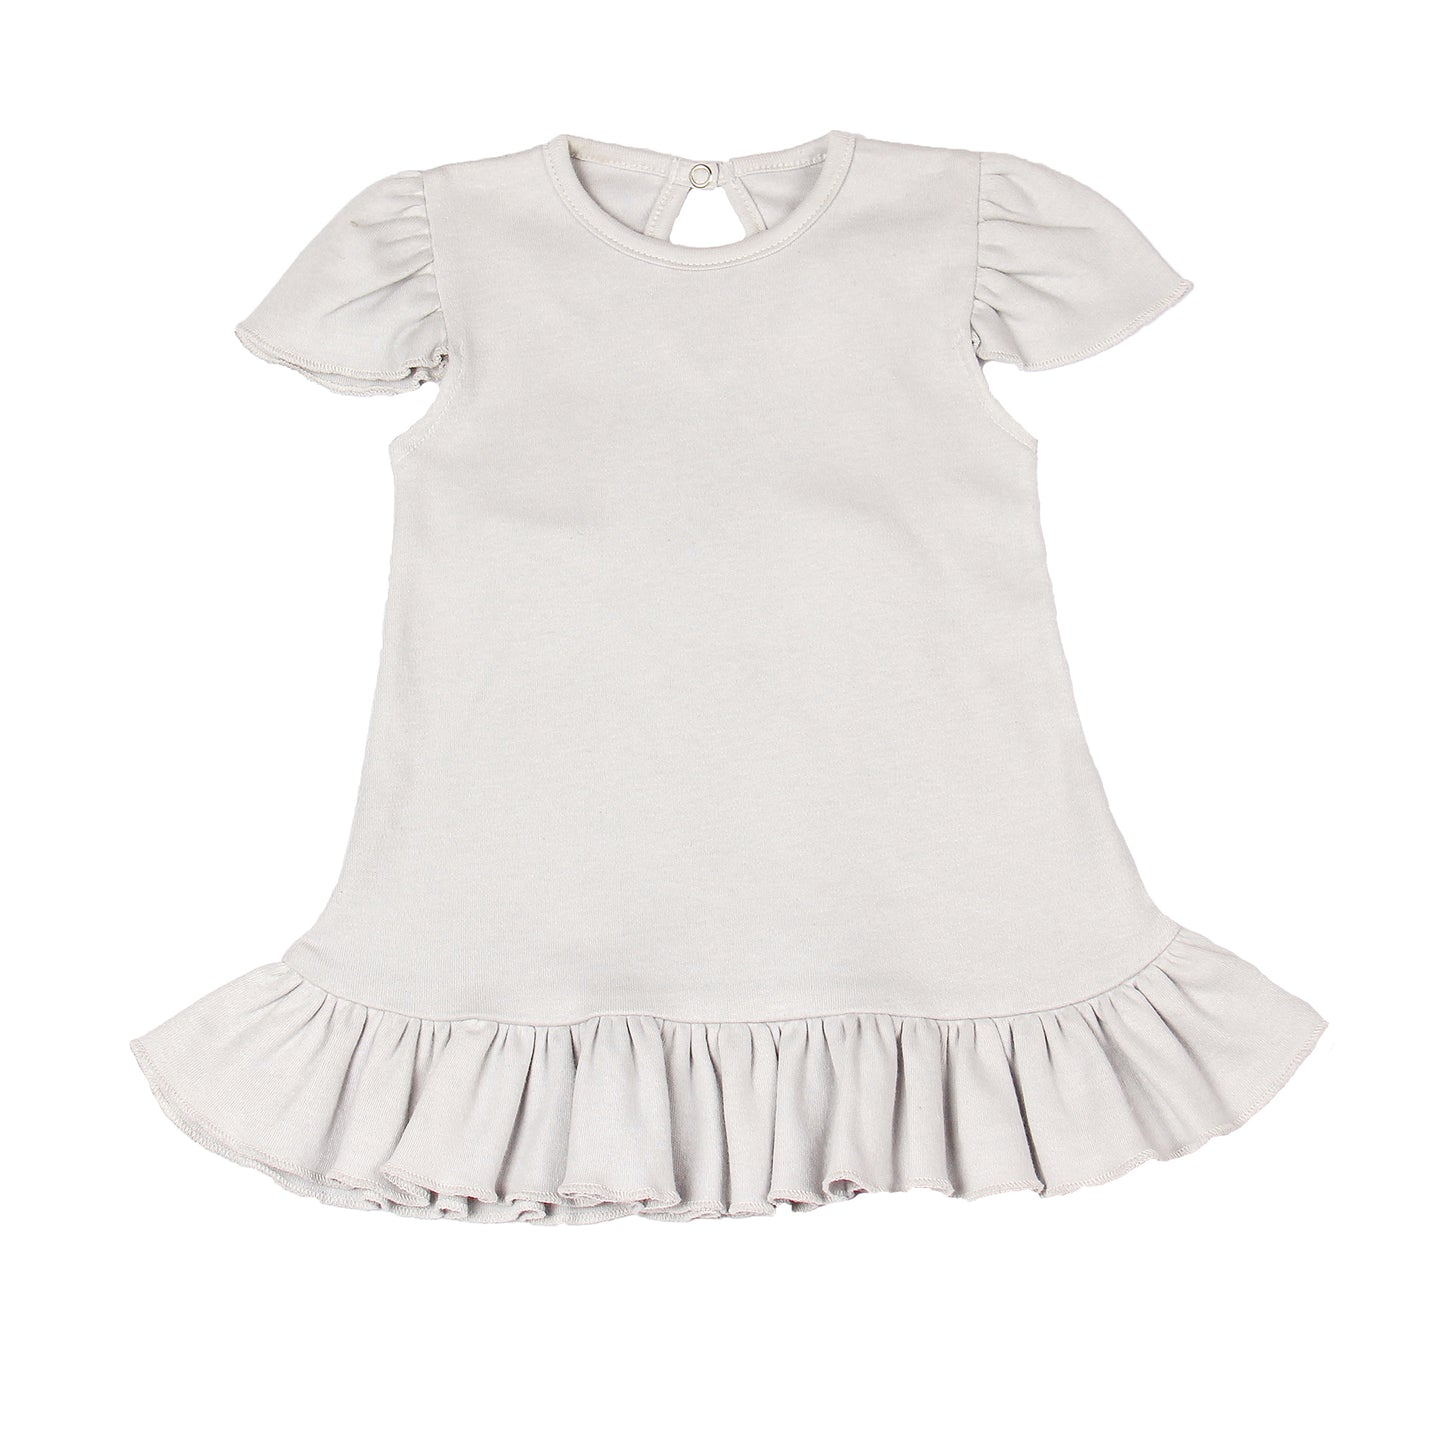 FH-5019 - Baby Girl Dress - Bottom Frill Solid Grey - Featherhead Baby